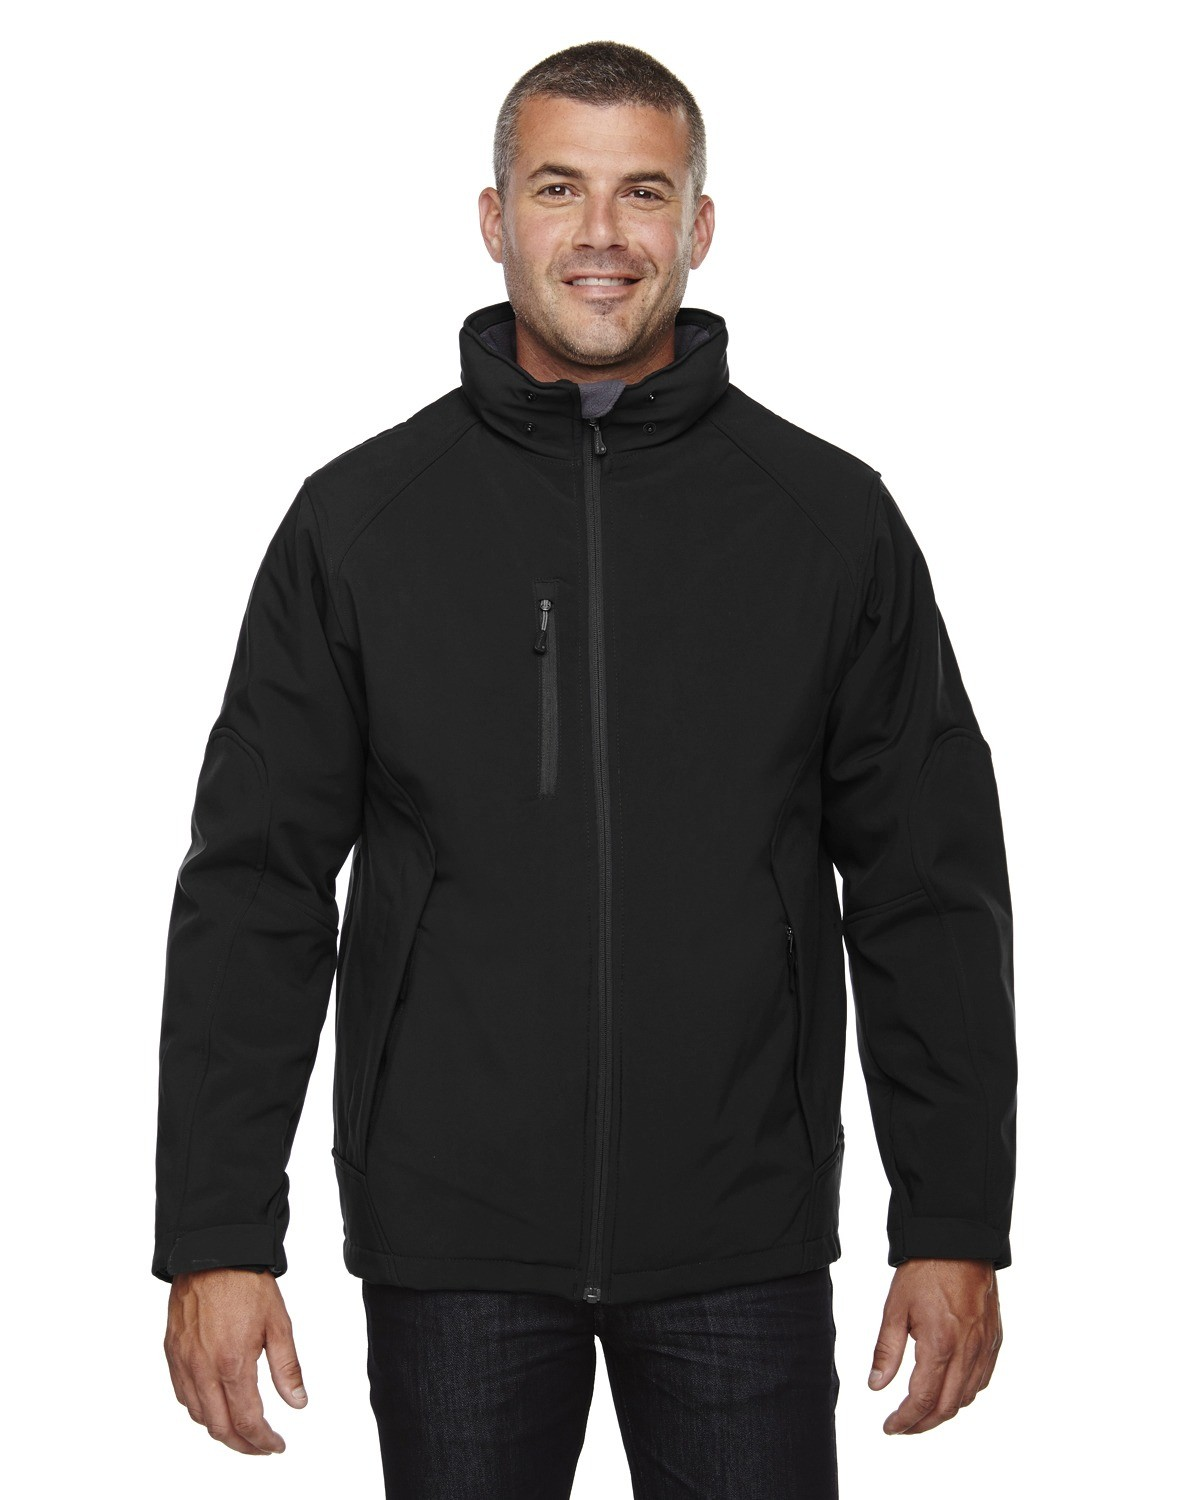 Men's Glacier Insulated Three-Layer Fleece Bonded Soft Shell Jacket with Detachable Hood